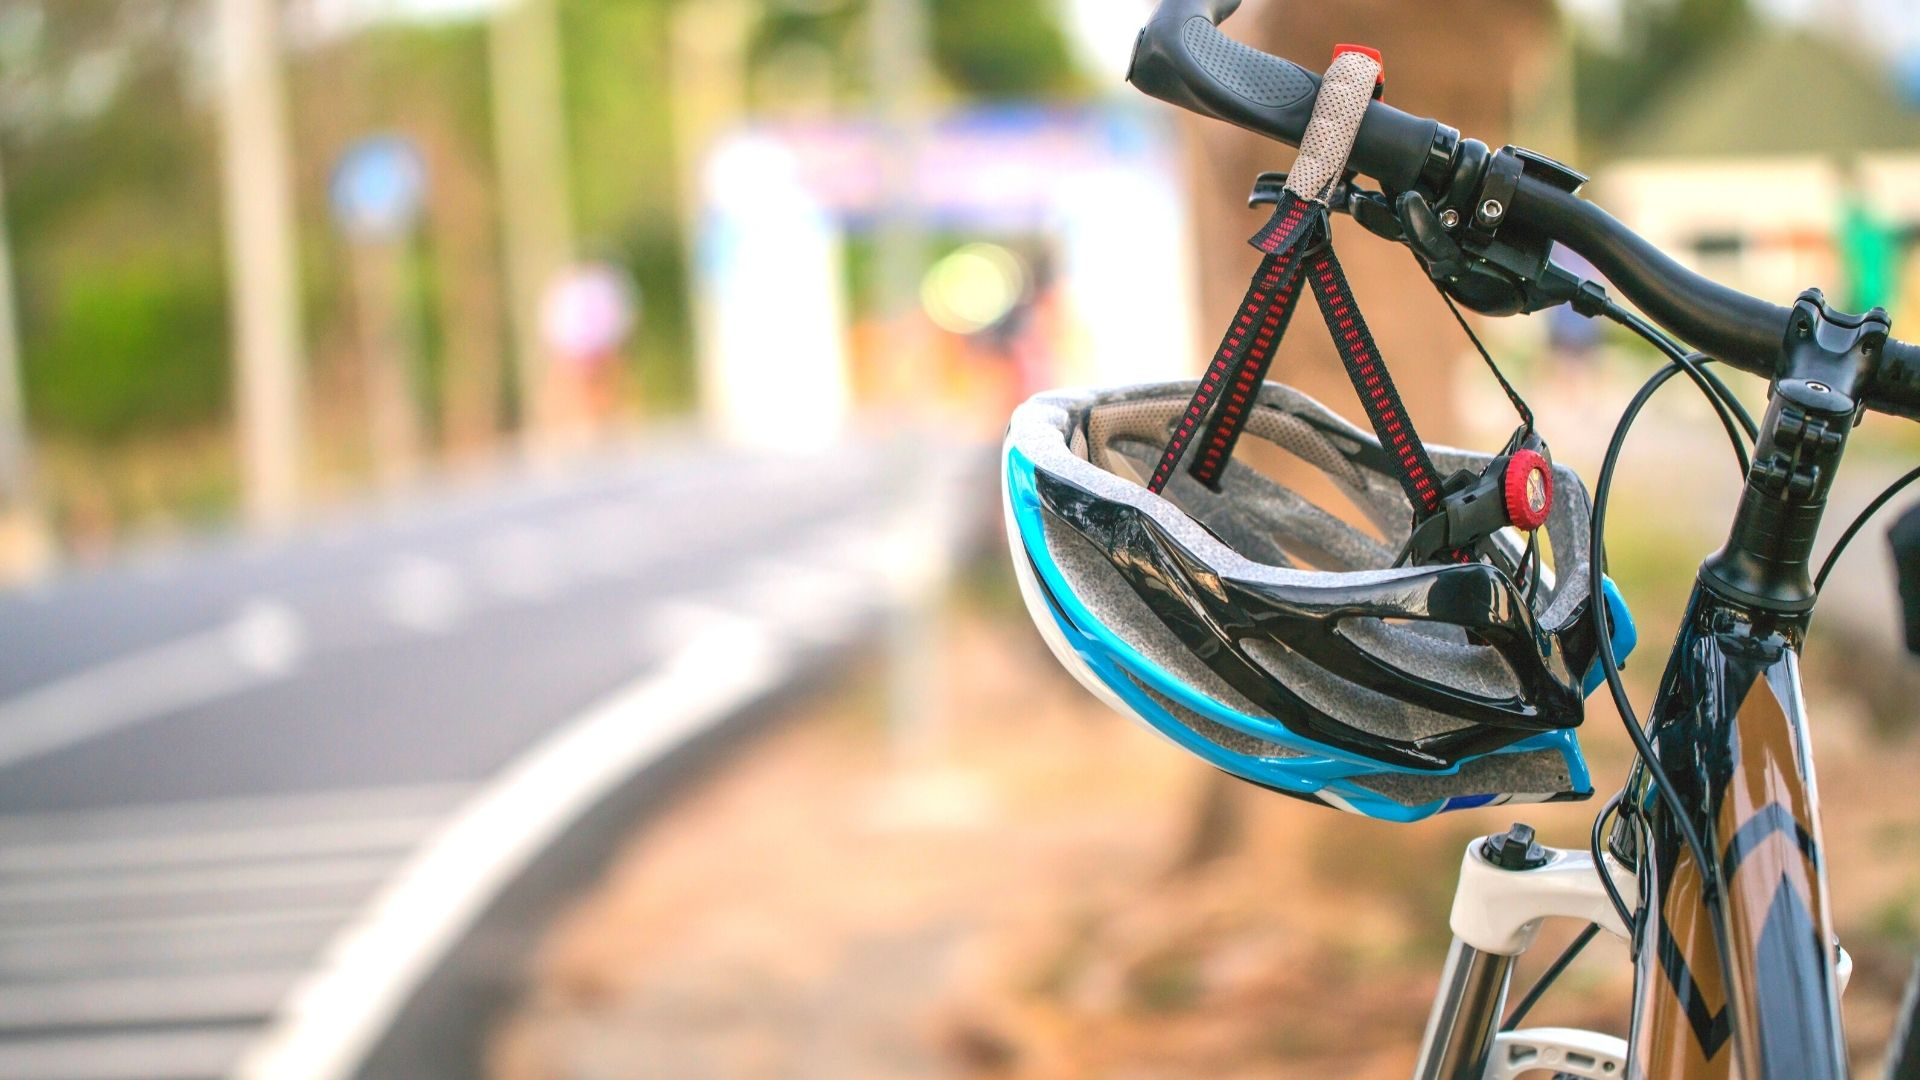 Cycling to Work Safety Tips